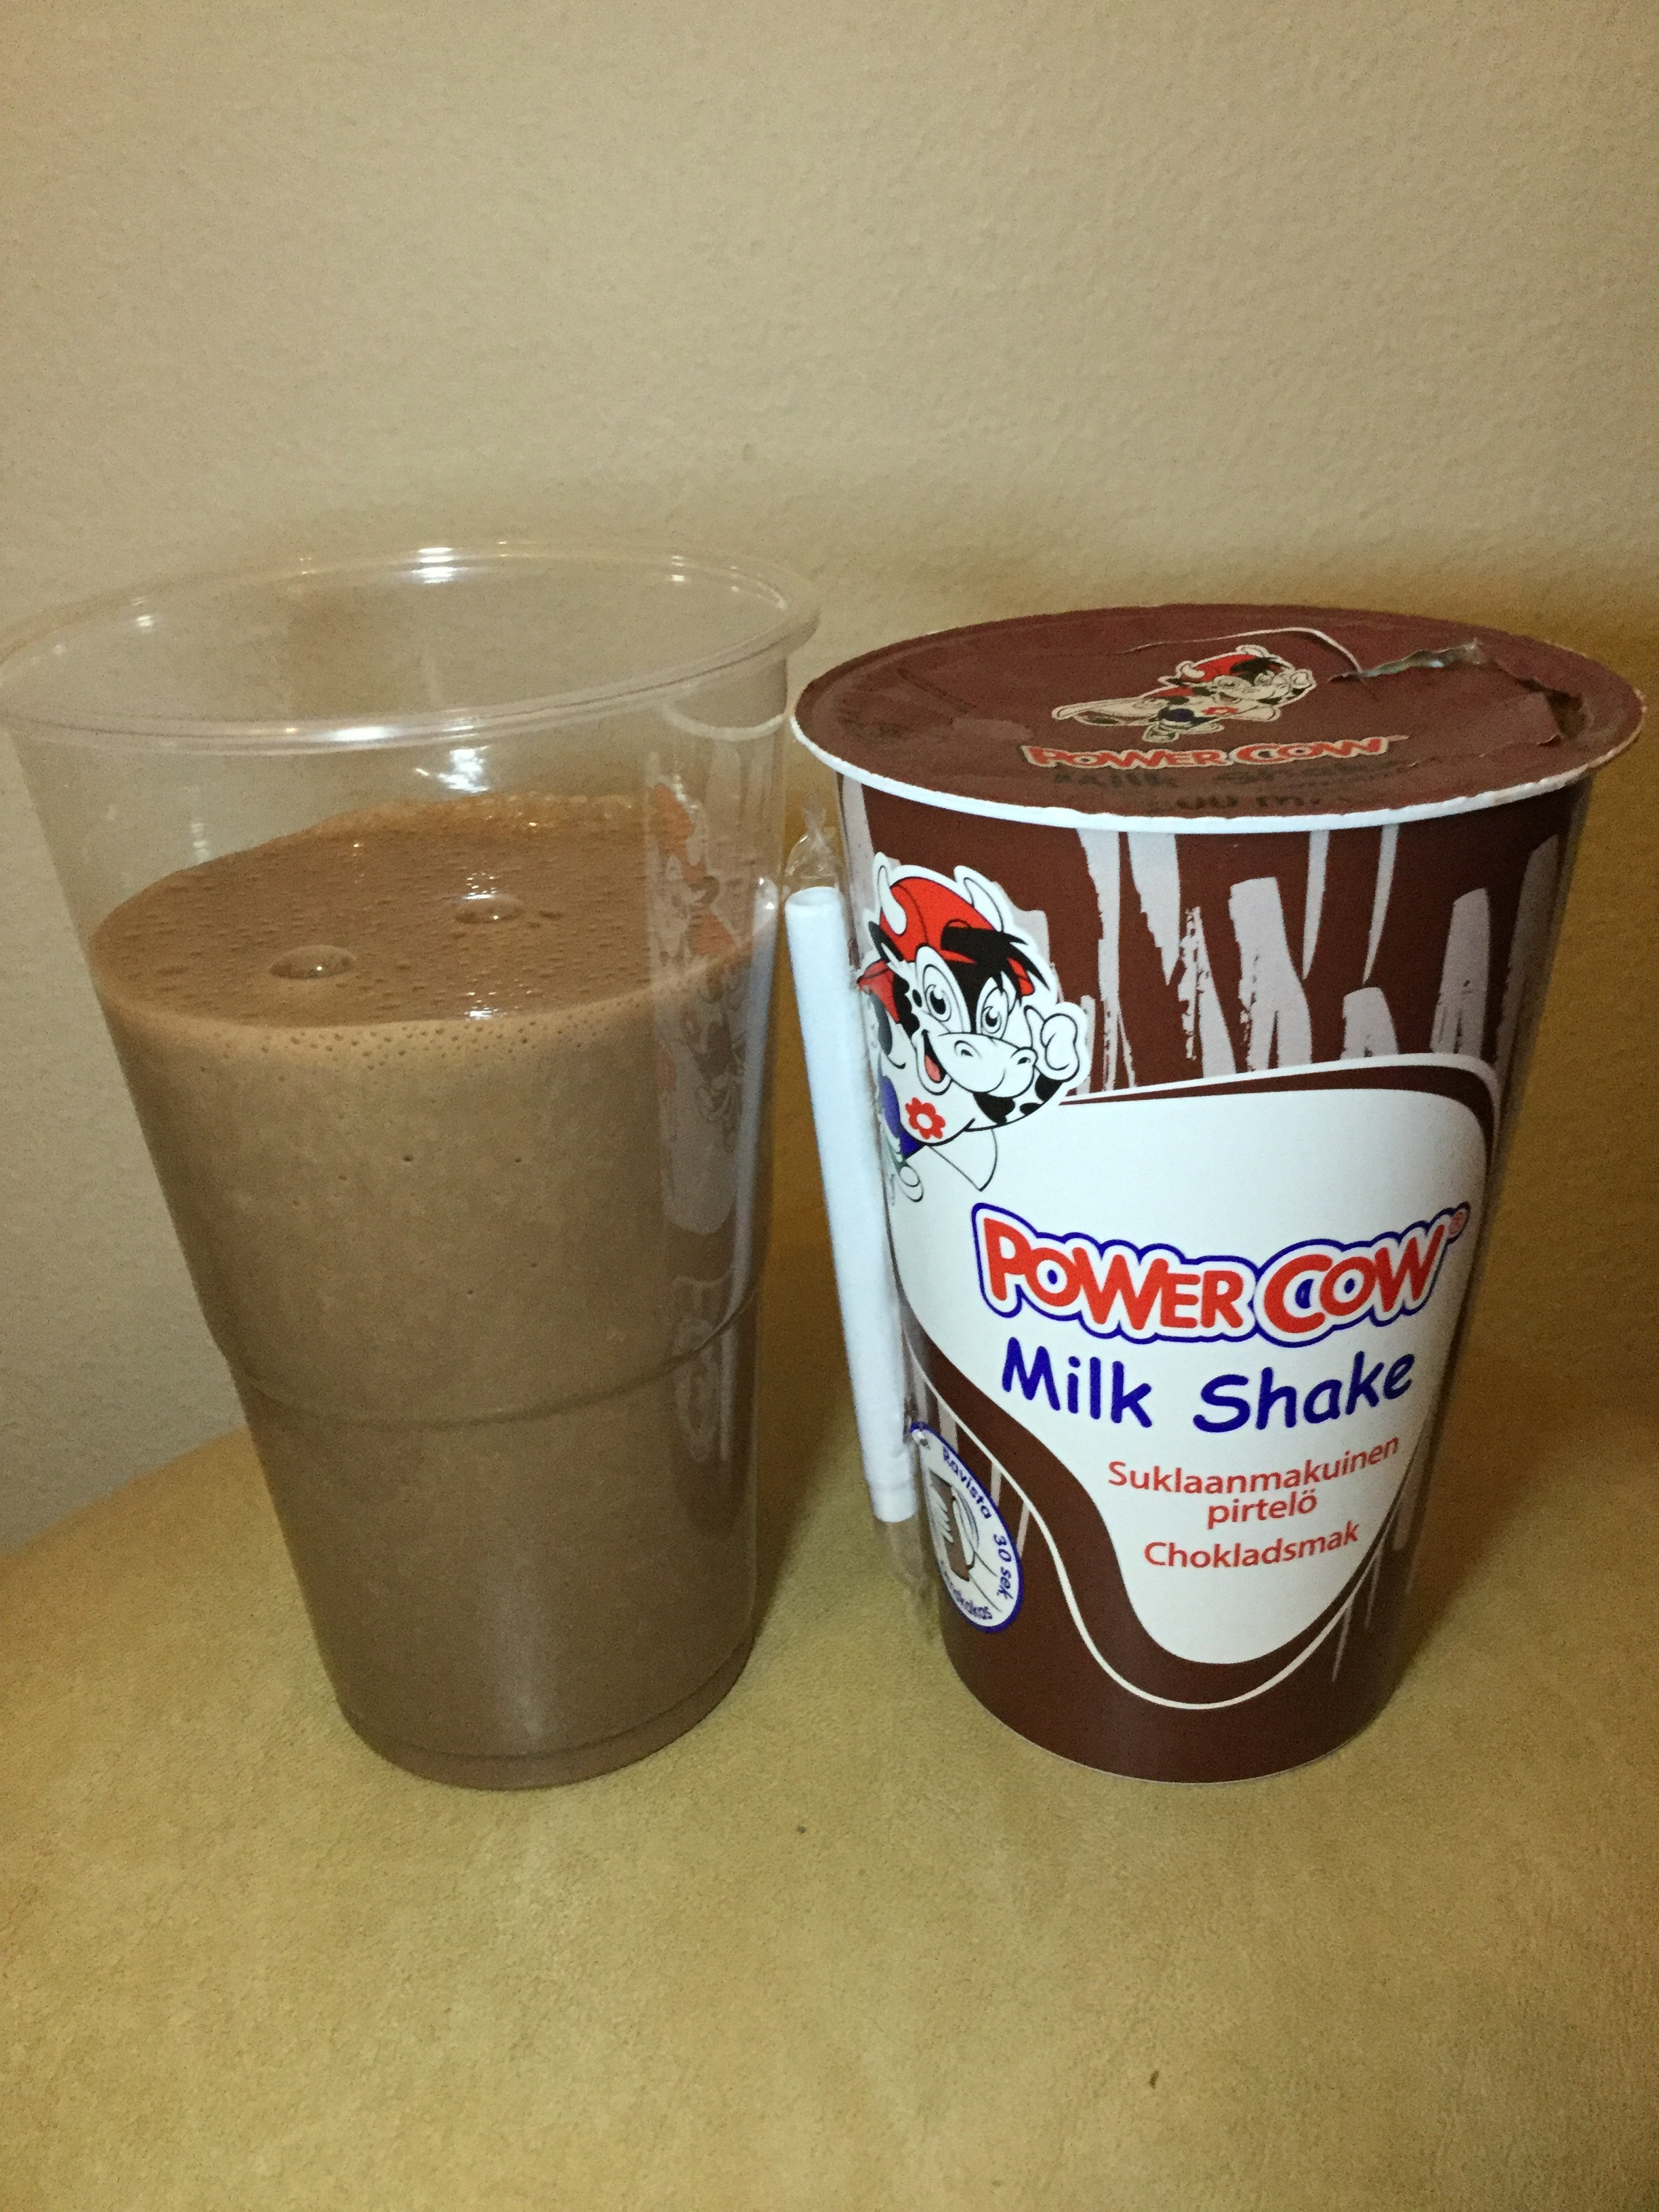 Power Cow Milk Shake Chokladsmak Cup